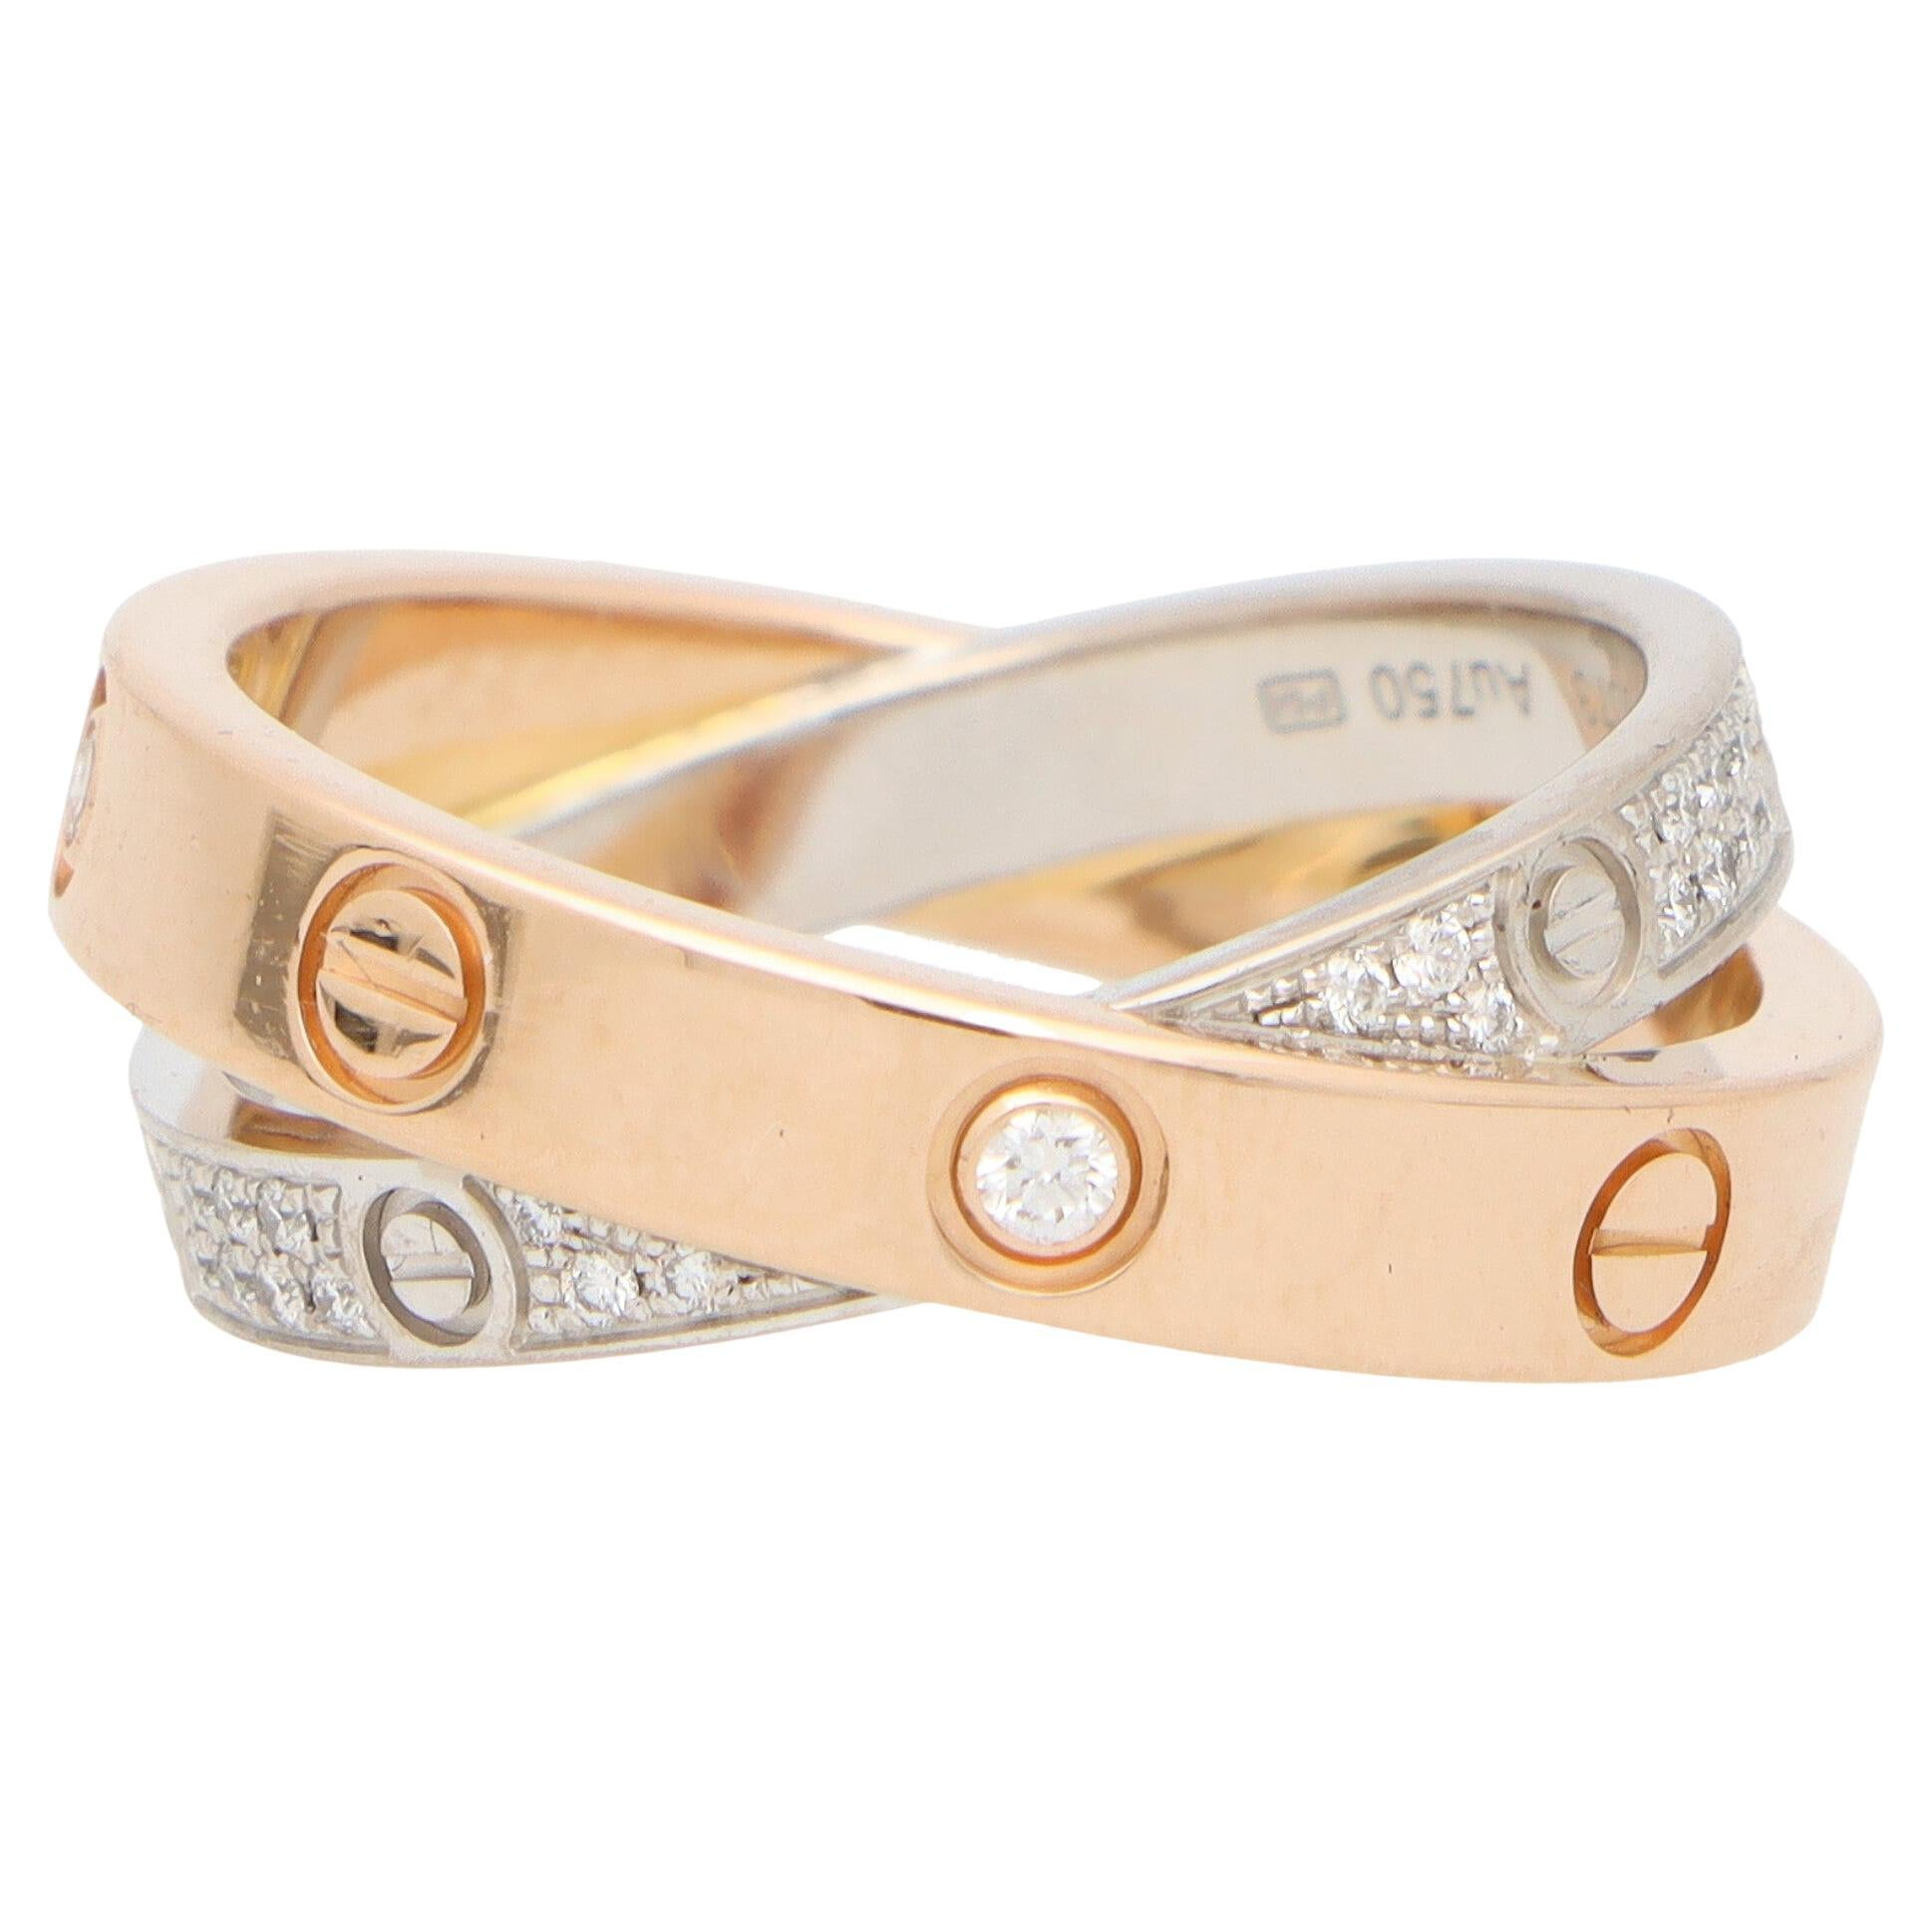 Vintage Cartier Double Band Diamond Love Ring in 18k Rose and White Gold